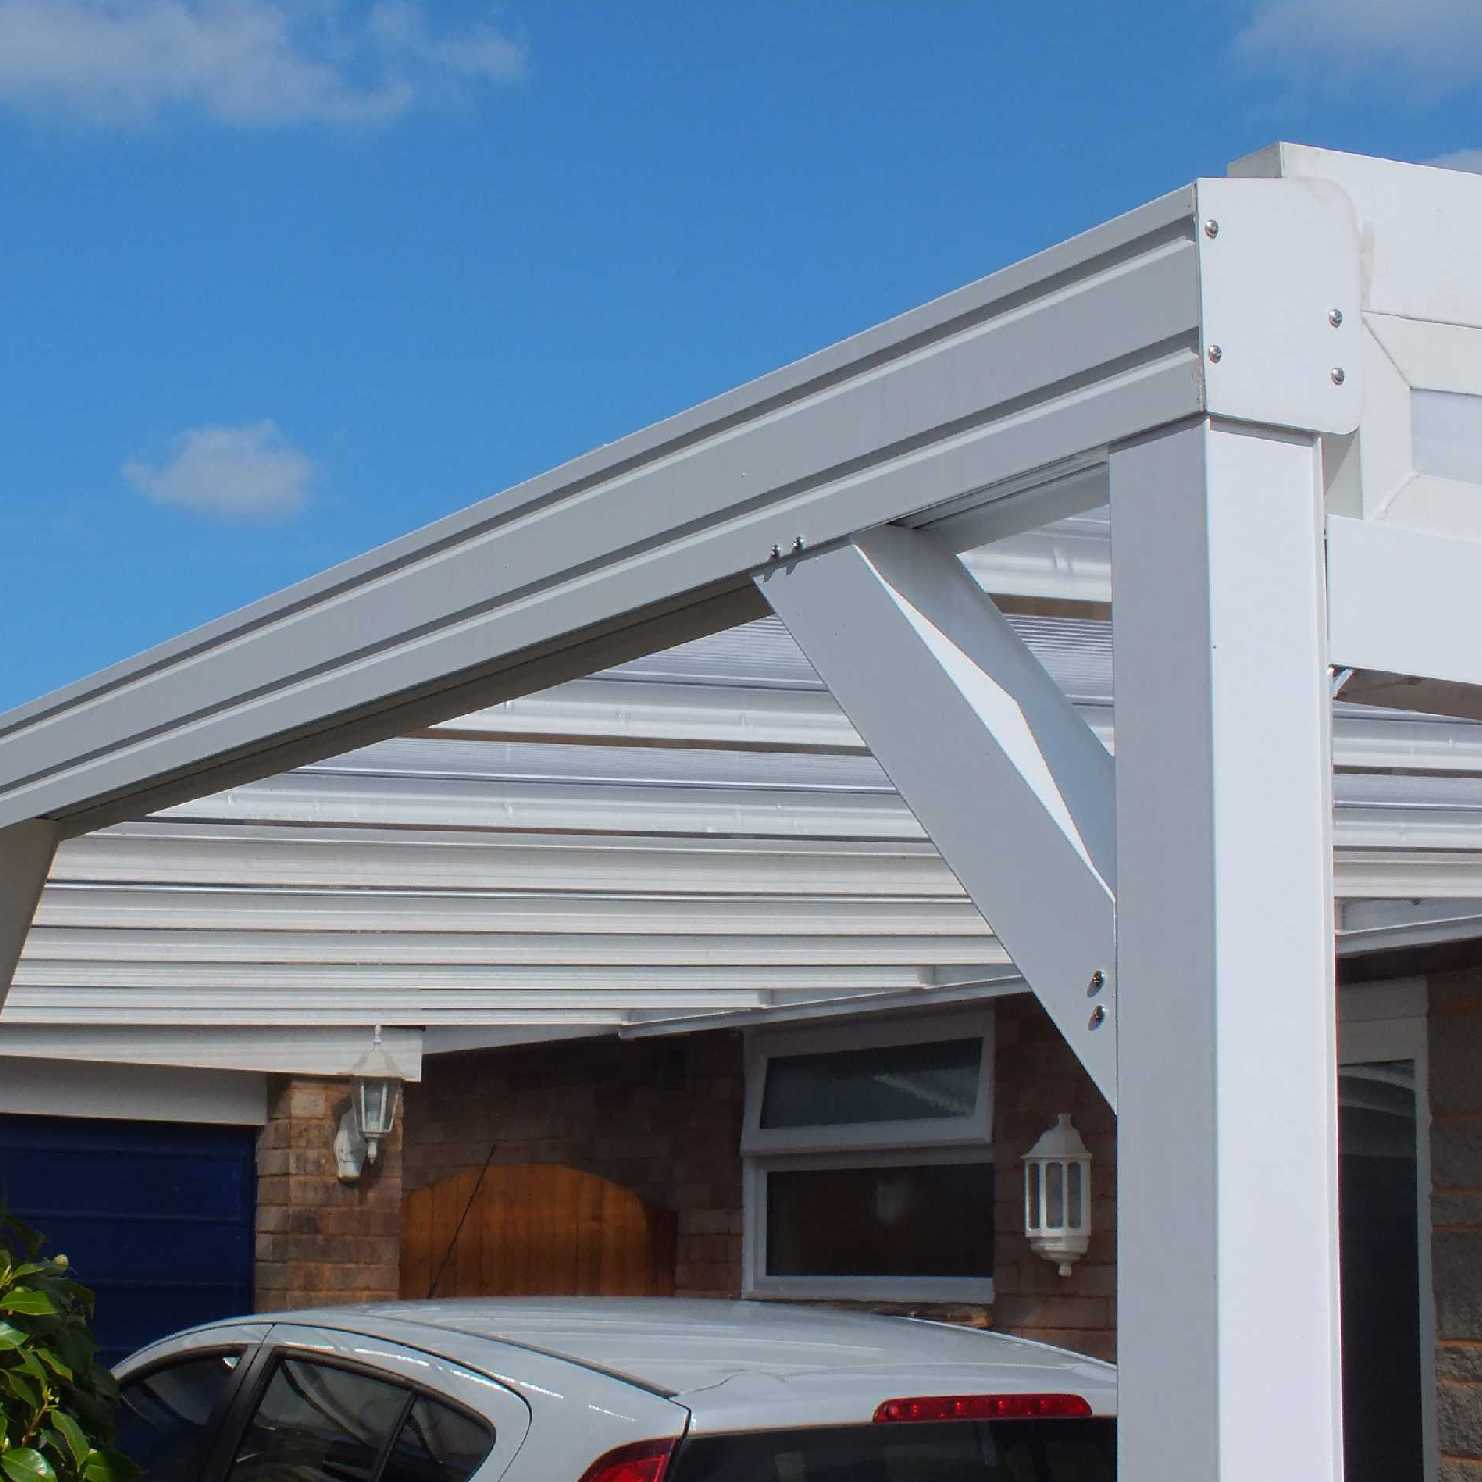 Great deals on Omega Smart White Lean-To Canopy with 16mm Polycarbonate Glazing - 12.0m (W) x 2.0m (P), (5) Supporting Posts